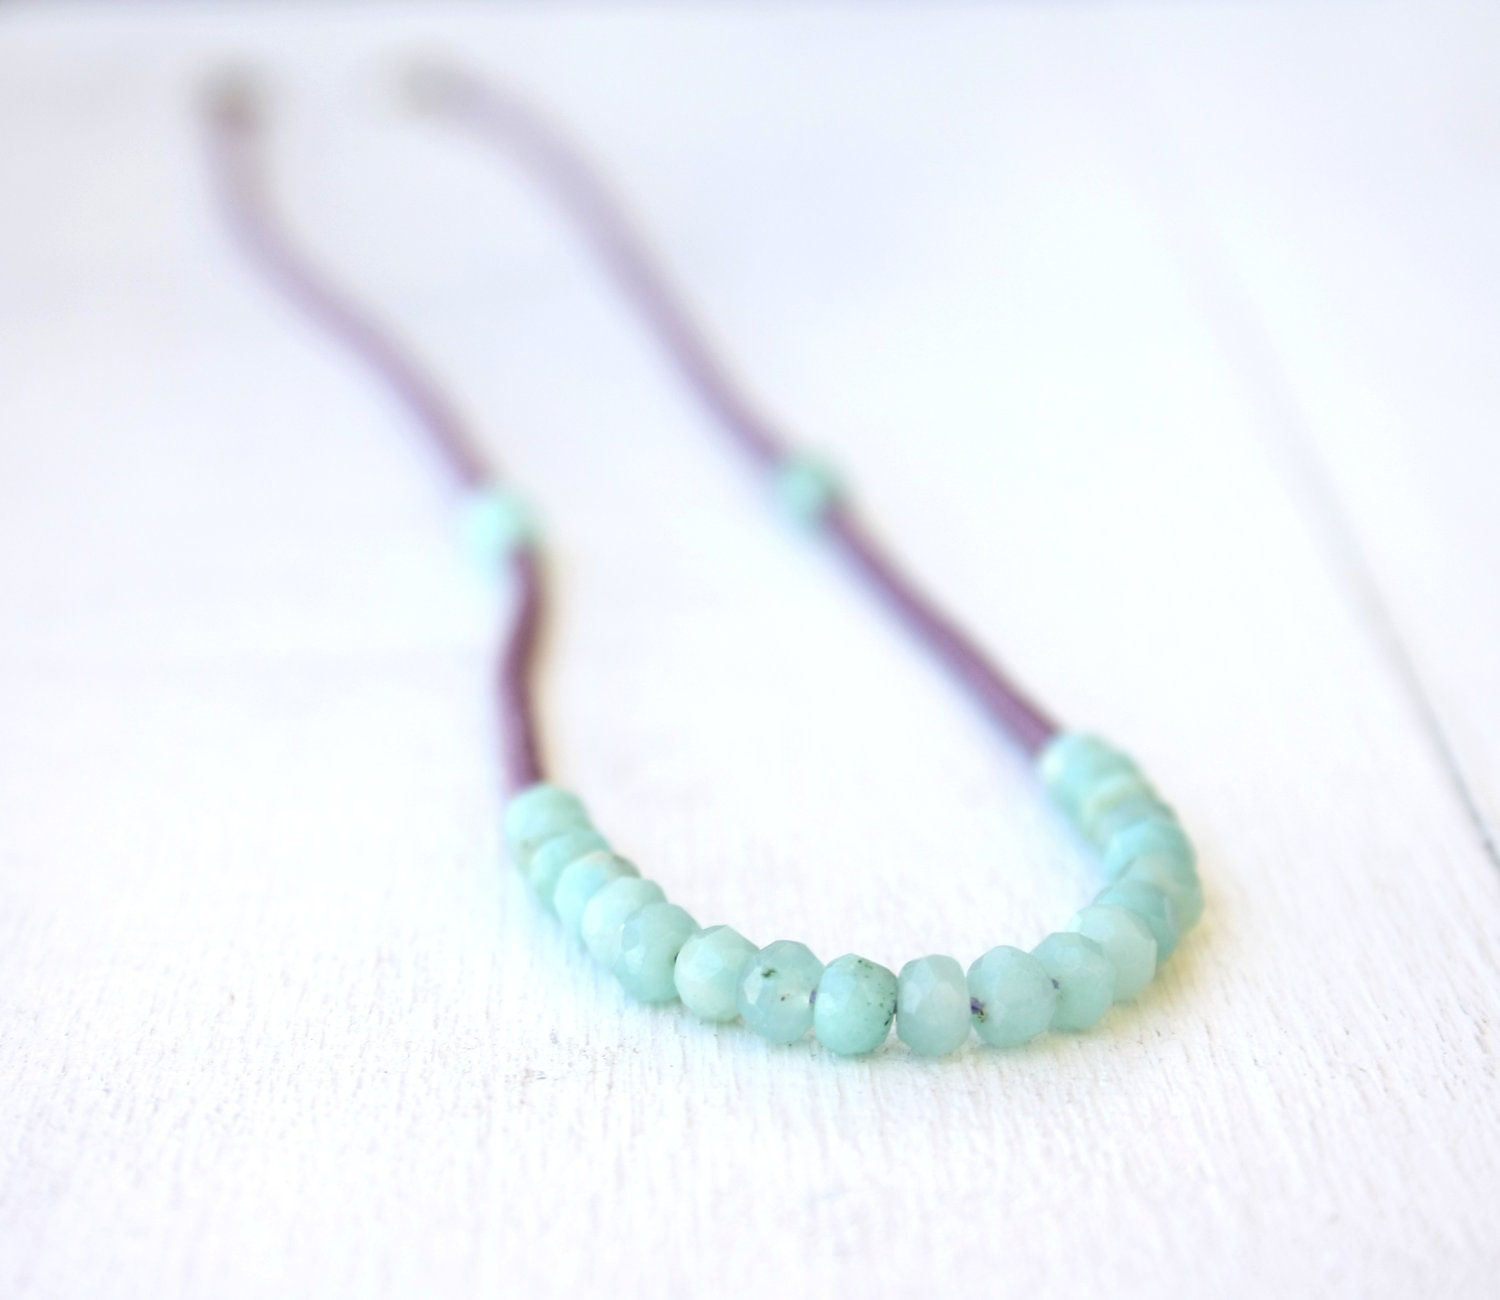 Purple and Seafoam Green necklace / beaded necklace mint and purple / spring summer fashion / pastel colors FREE SHIPPING - SilverLinesJewelry